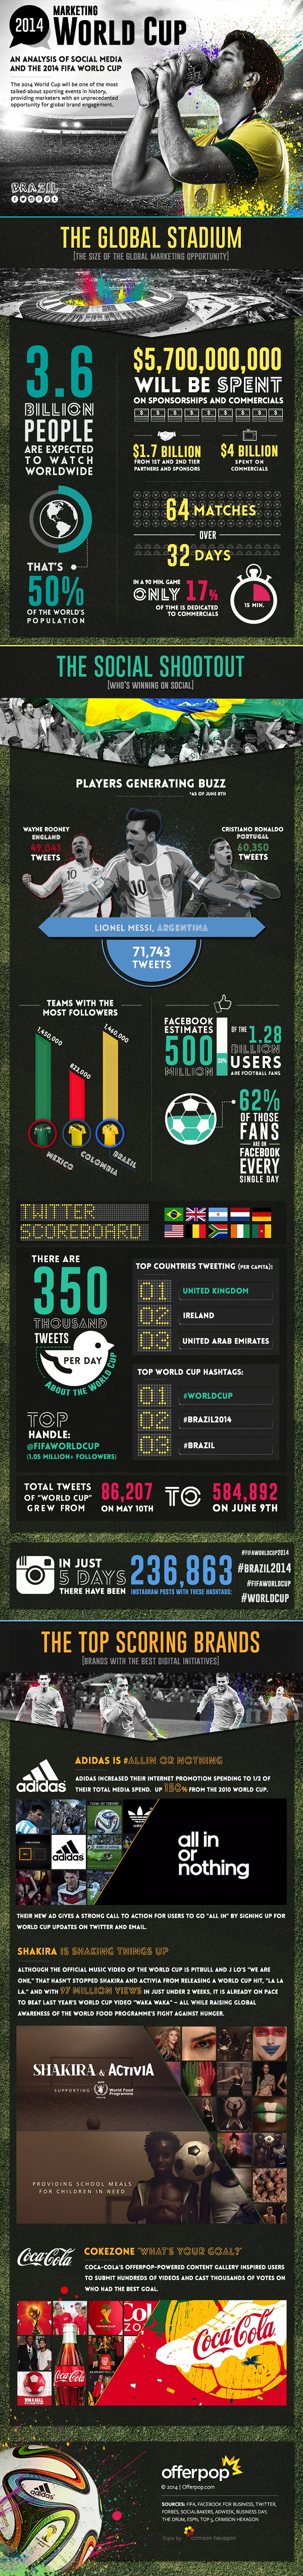 World-cup-infographic-offerpop